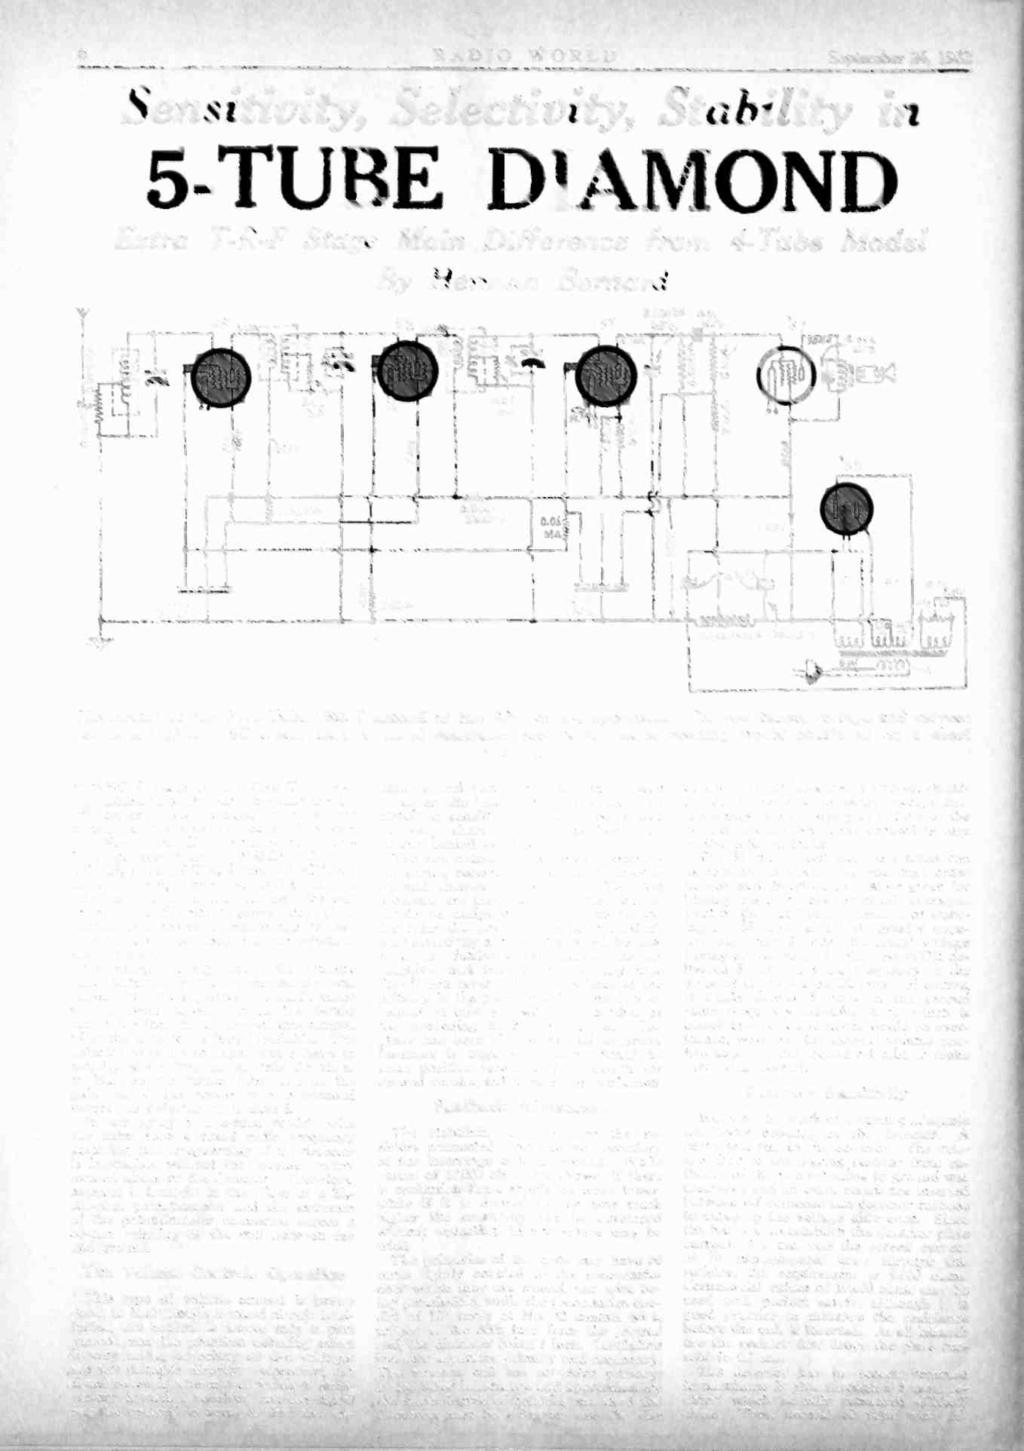 5 Tube A C Diamond Pdf Radio Likewise Aircraft Receiver Circuits On Schematic World September 24 1932 Sensitivity Selectivity Stability In